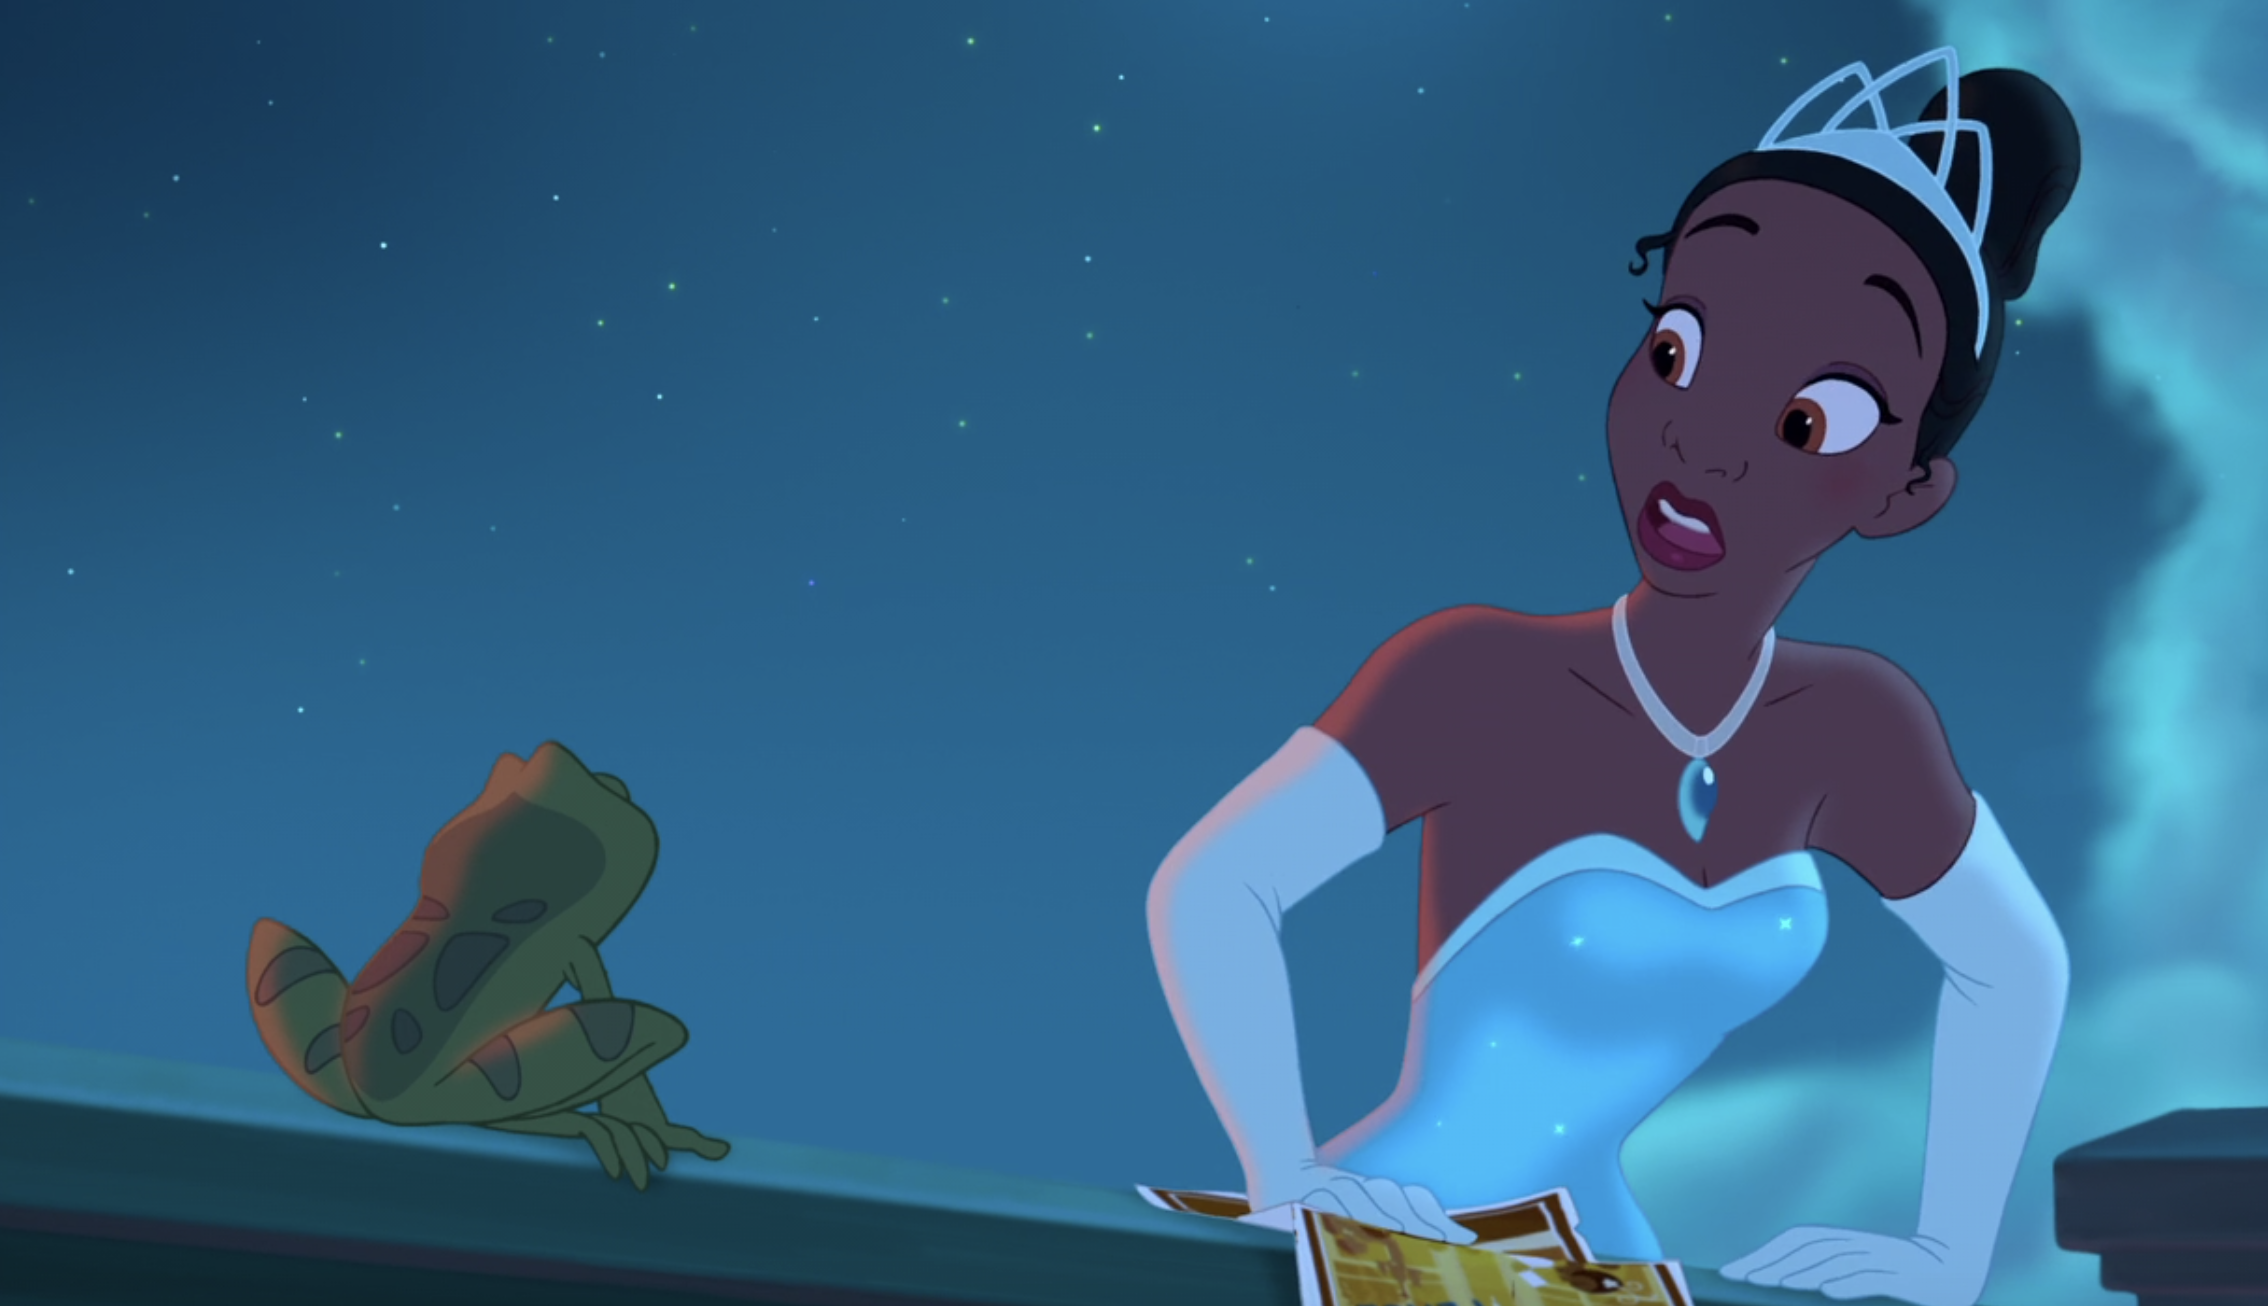 Tiana opens her eyes wide in surprise as she looks down at Naveen the frog